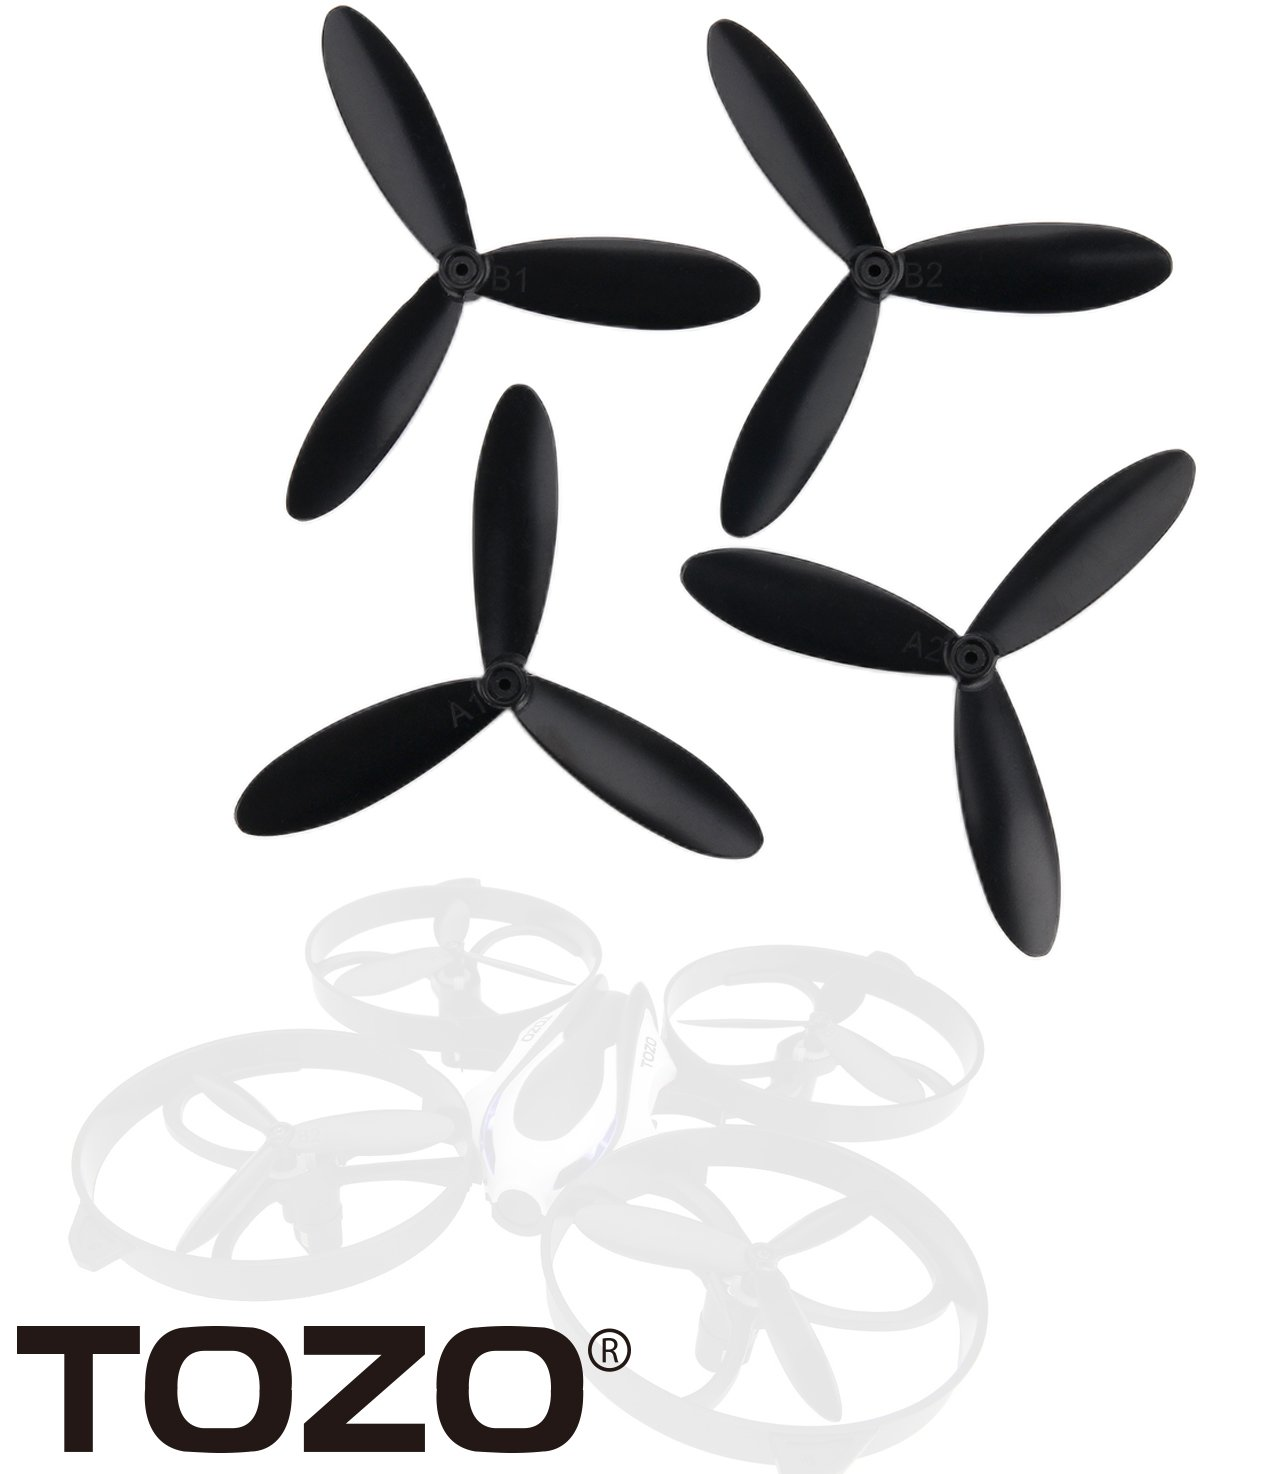 TOZO Q2020-03 Propeller for Q2020 i3 Drone RC Quadcopter Remote ...